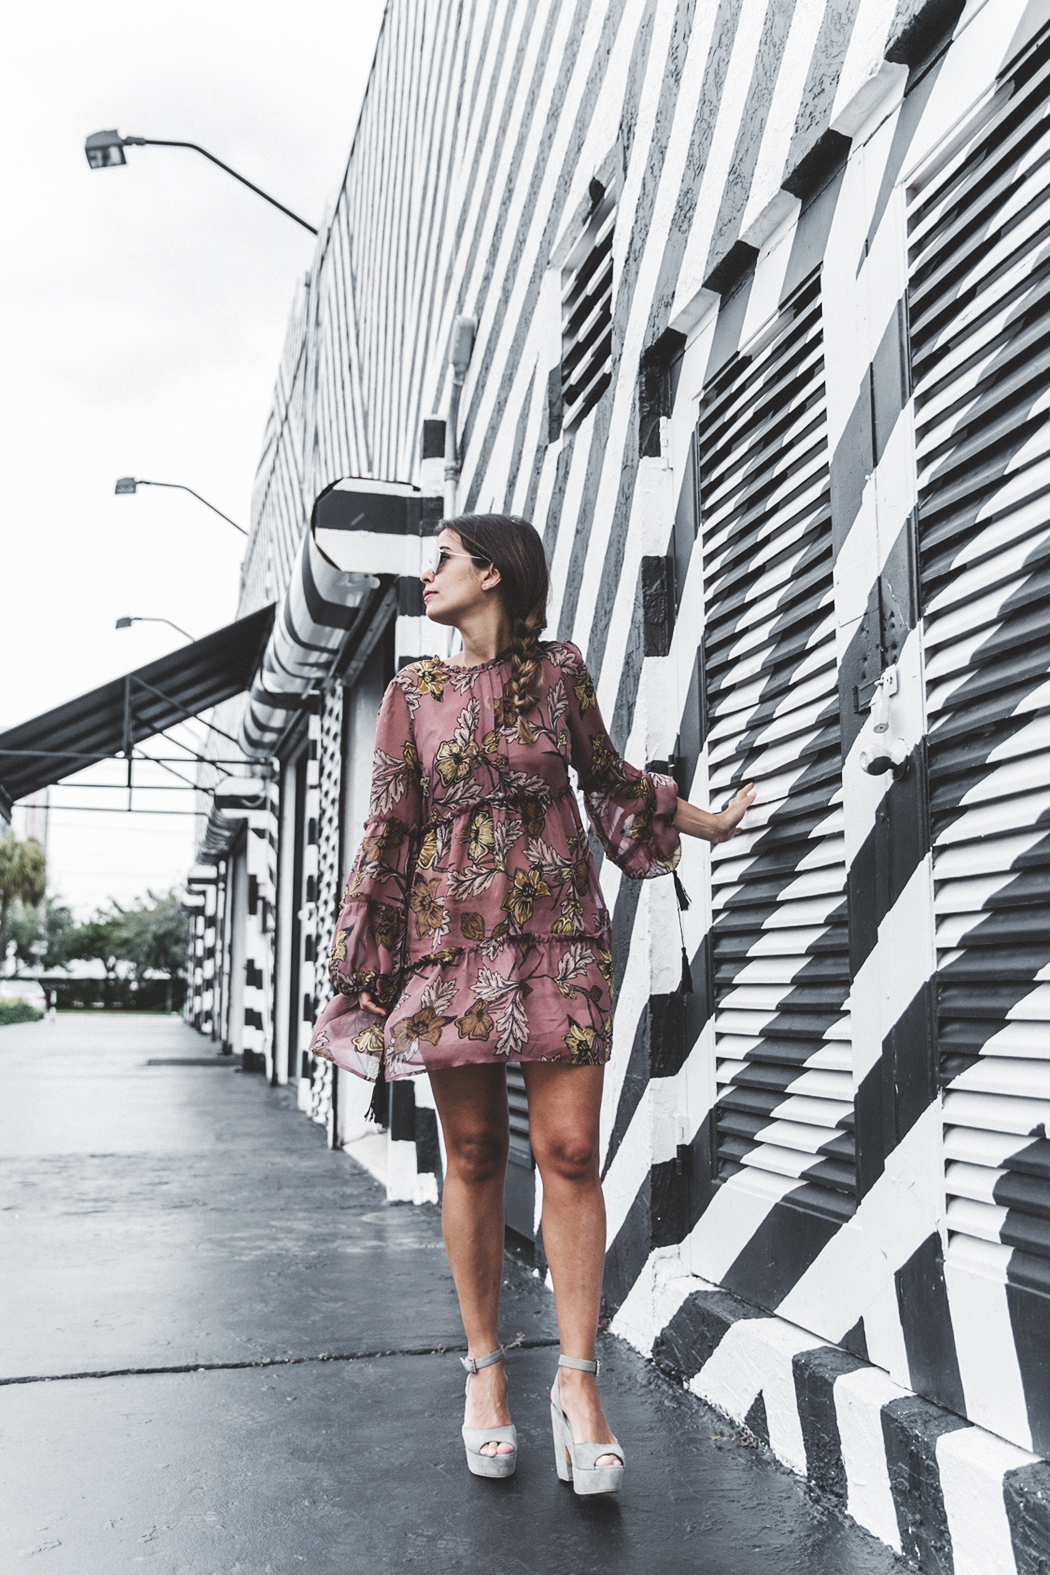 Wynwood-Miami-Black_And_White_Stripes_Wall-For_Love_And_Lemons_Dress-Floral_Print-Wedges-Outfit-22